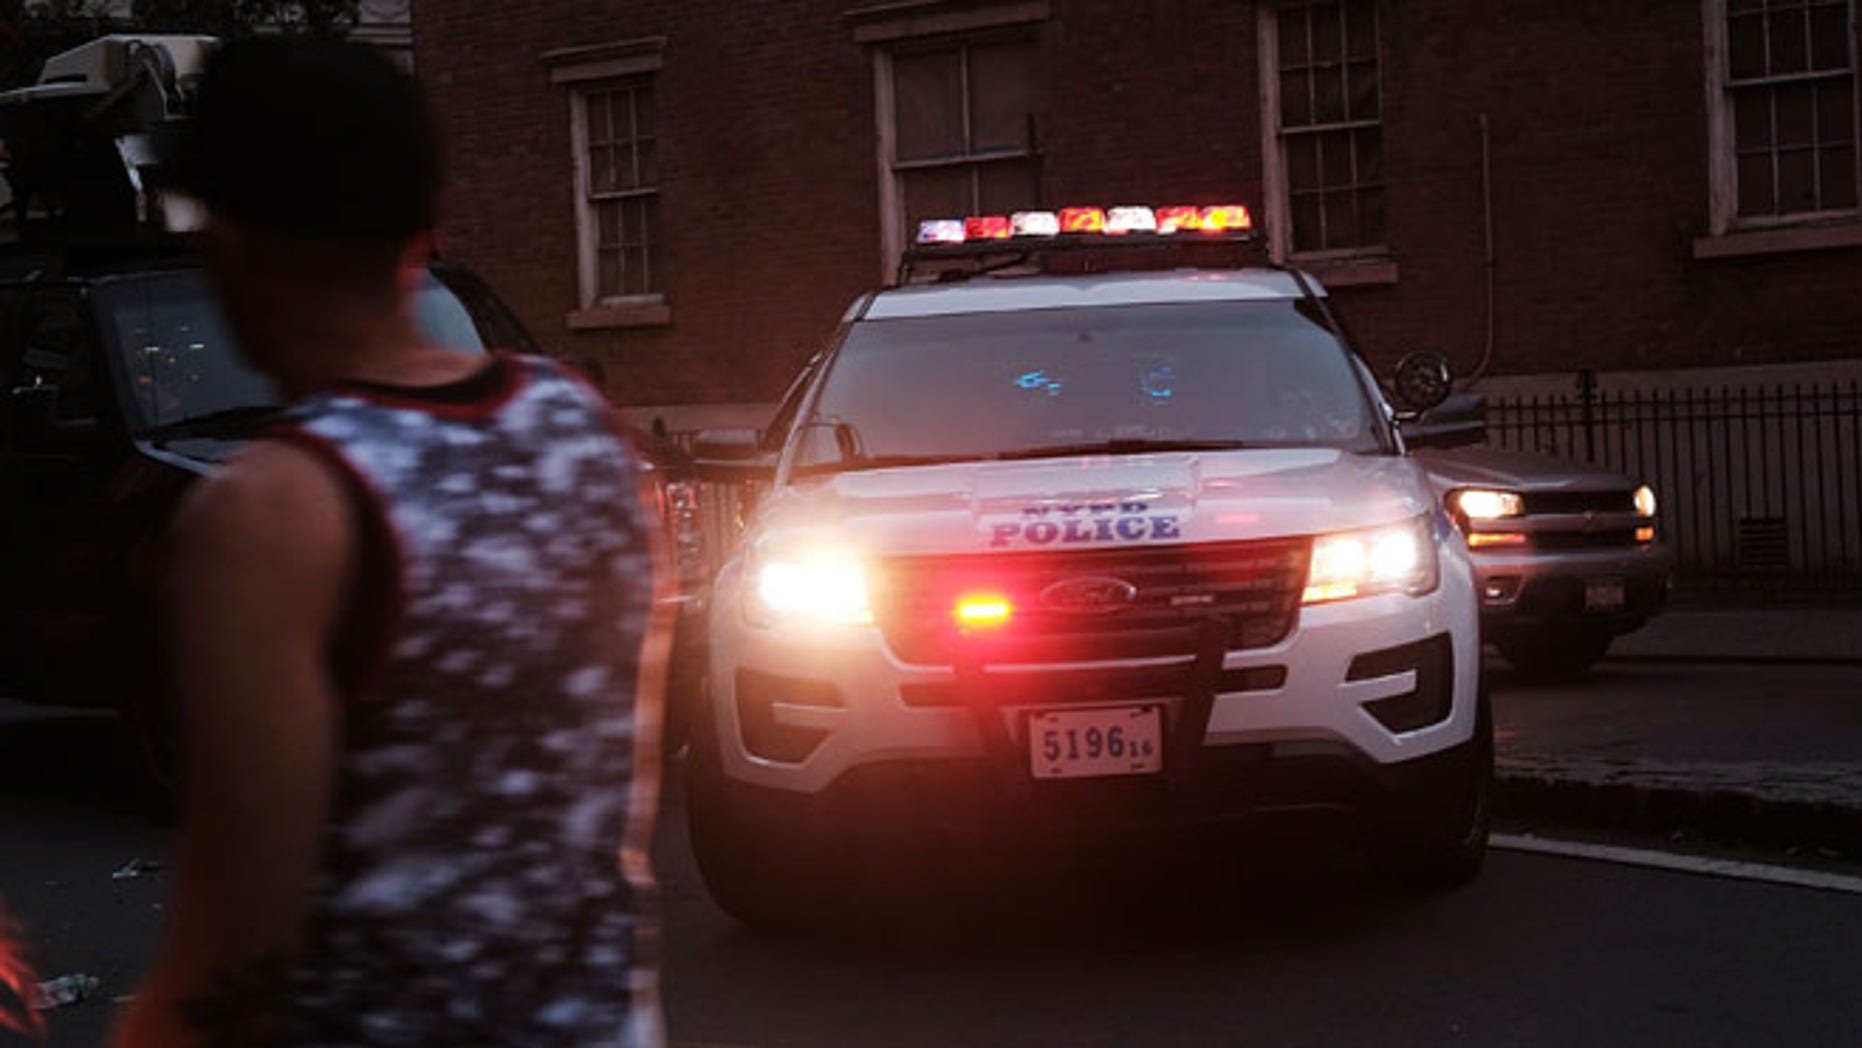 NEW YORK, NY - JUNE 12:  A heavy police presence gathers near the iconic New York City gay and lesbian bar The Stonewall Inn to following the mass killings in Orlando last evening on June 12, 2016 in New York City. An American-born man who'd recently pledged allegiance to ISIS killed 50 people early Sunday at a gay nightclub in Orlando, Florida. The massacre was the deadliest mass shooting in the United States.  (Photo by Spencer Platt/Getty Images)